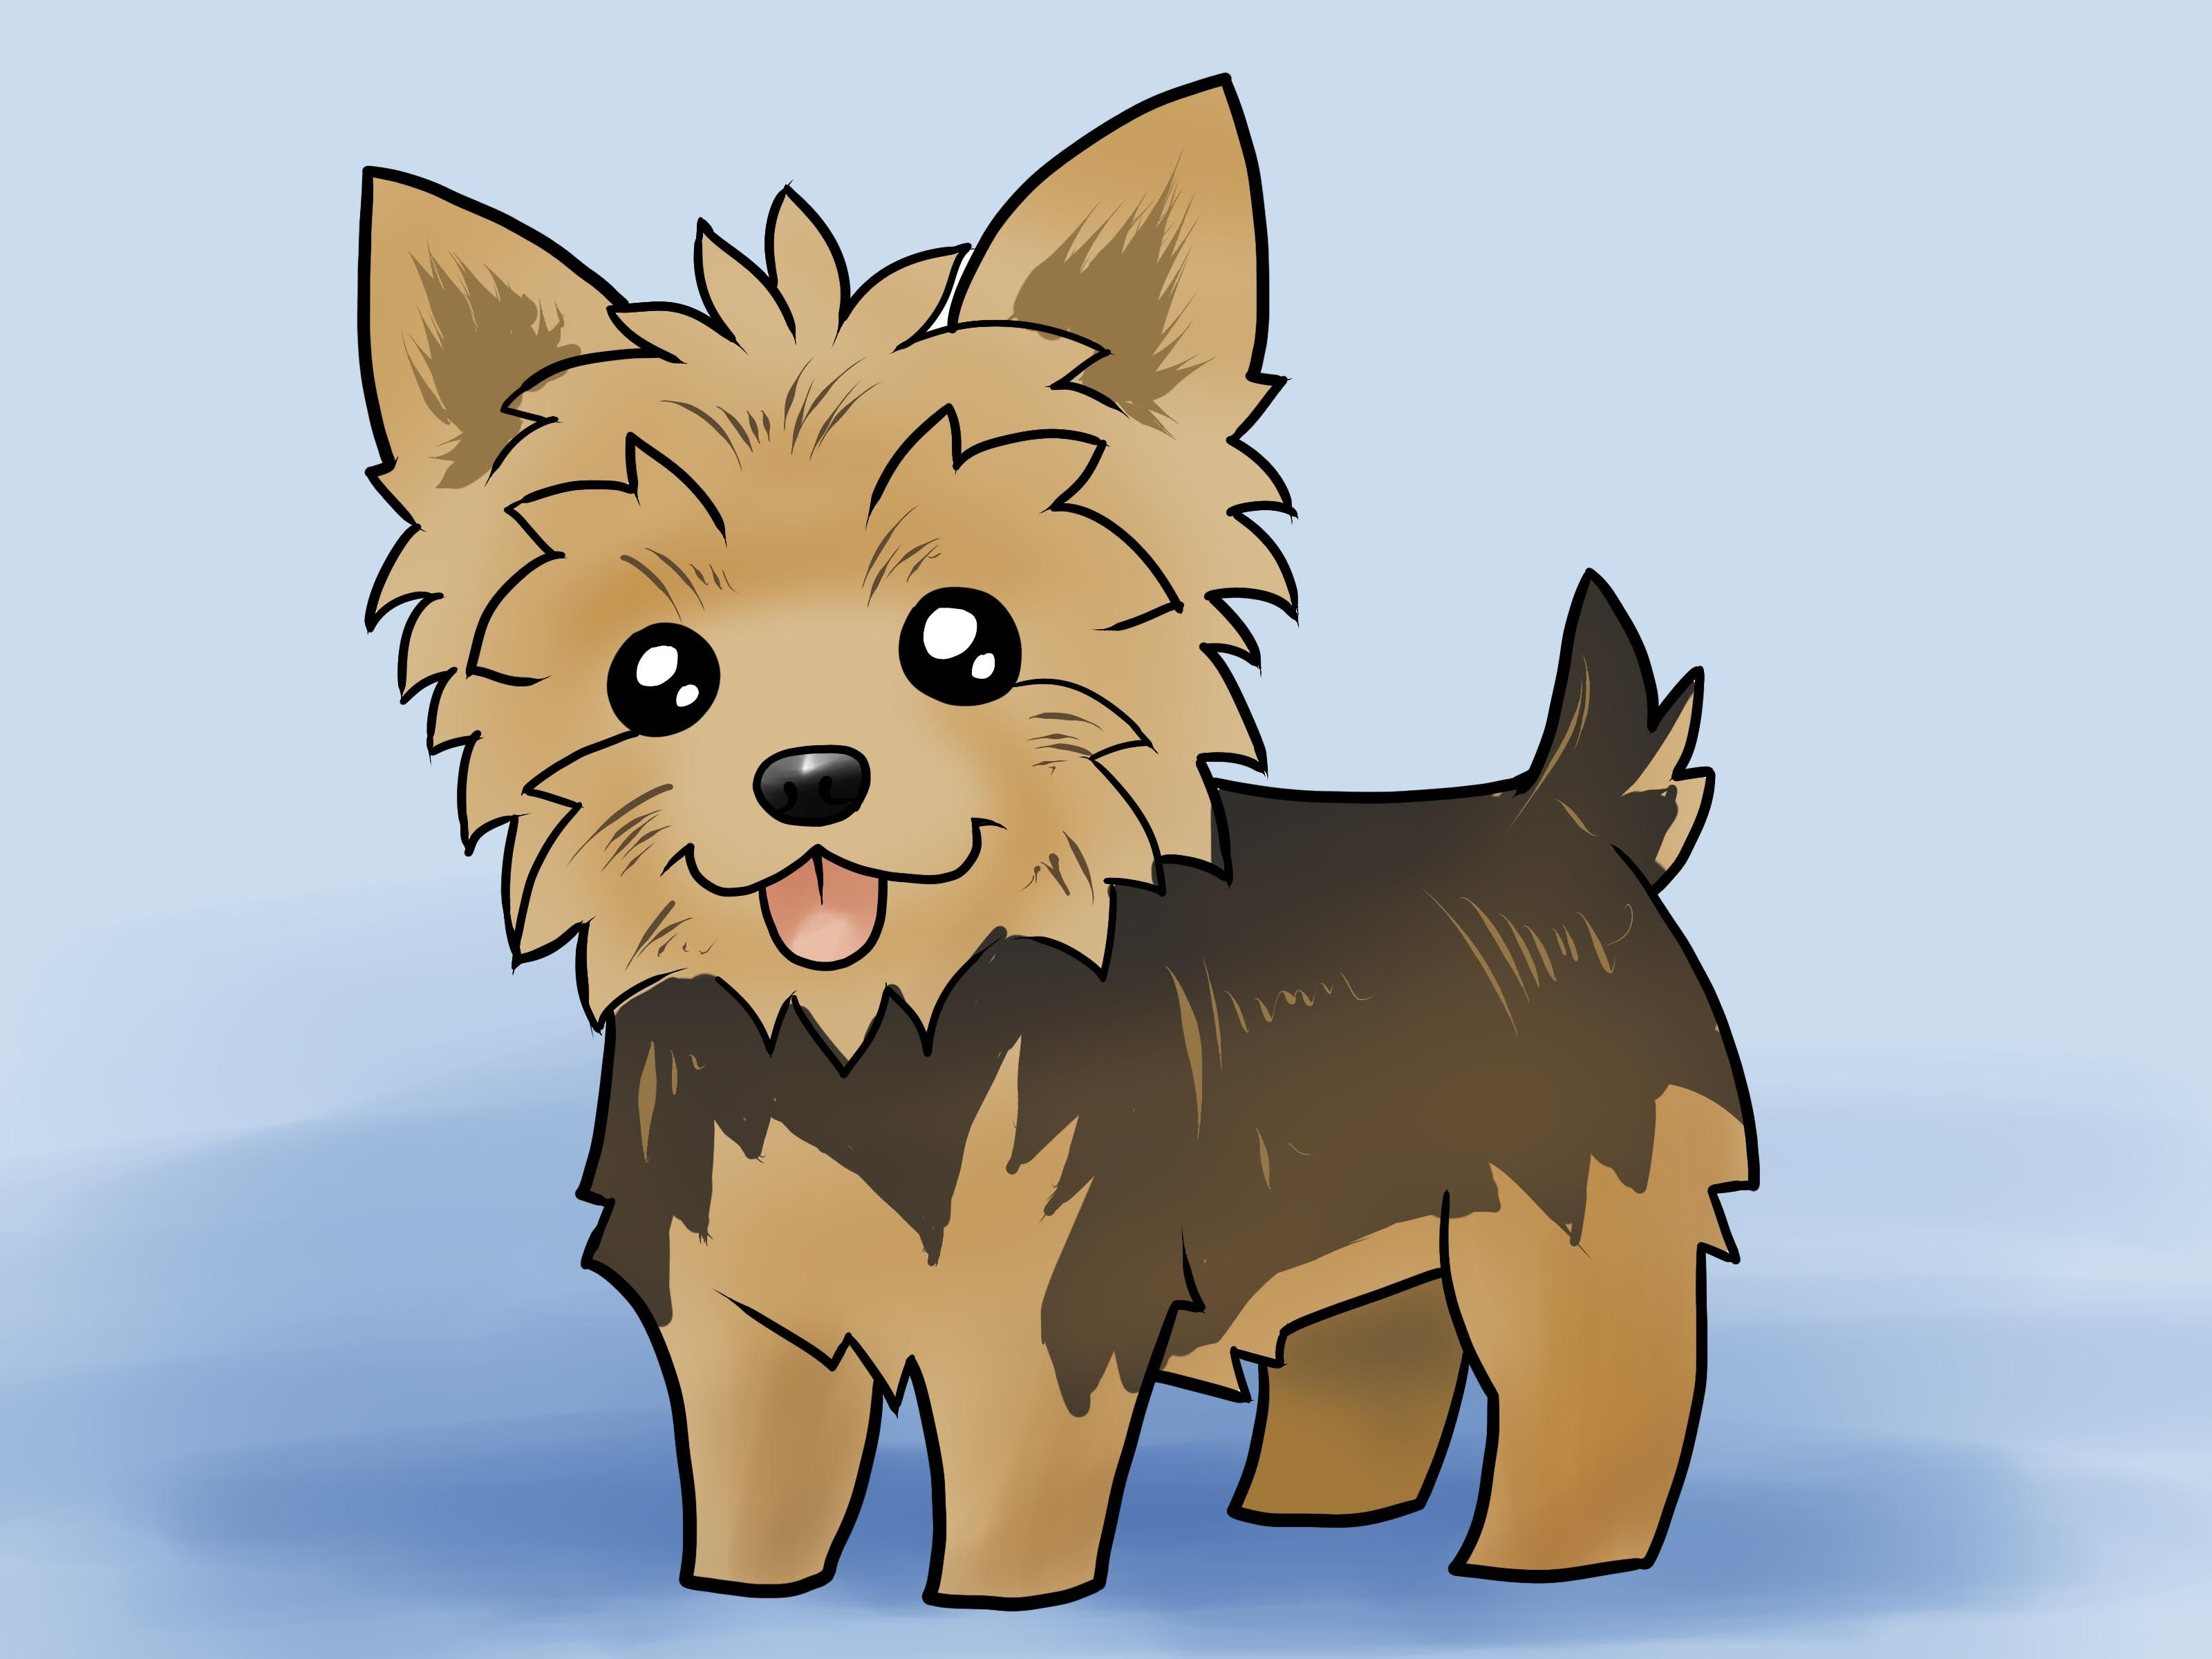 Learn Two Ways On How To Draw A Yorkie One Of The Popular Breed Of Dogs You Can Do This By Following These Sim Cute Dog Drawing Yorkie Painting Puppy Drawing